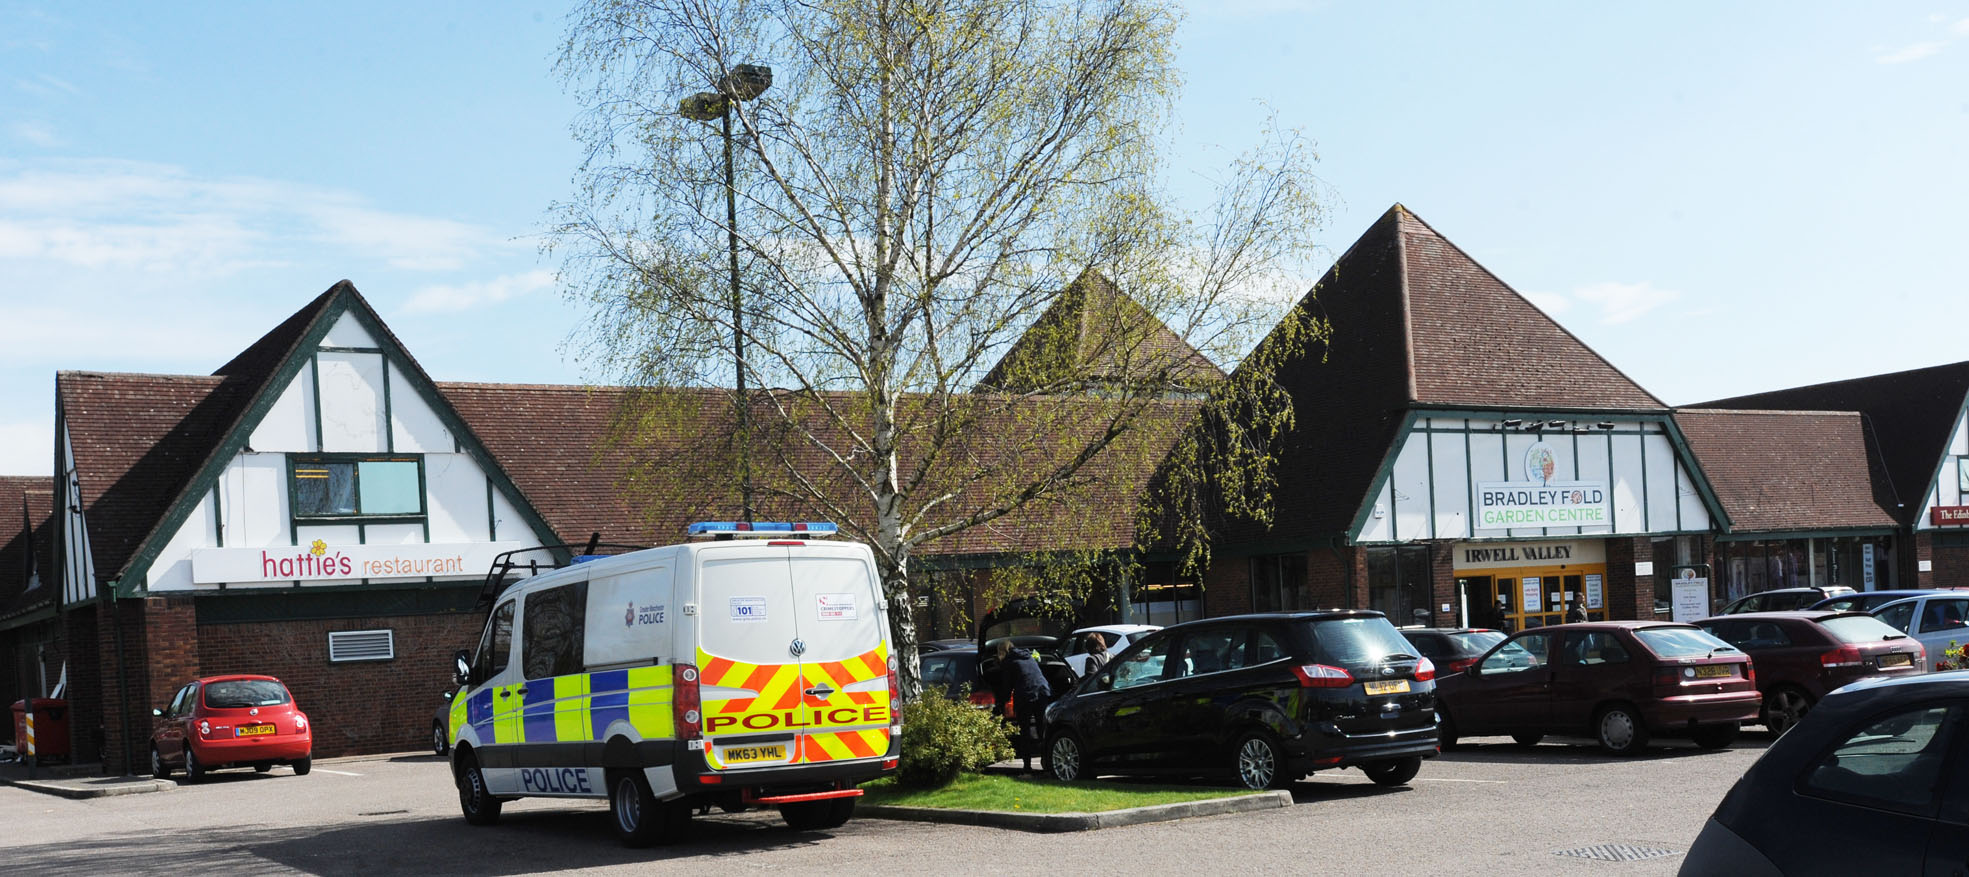 Police at Bradley Fold Garden Centre, where the missing three-year-old boy sparked a major panic